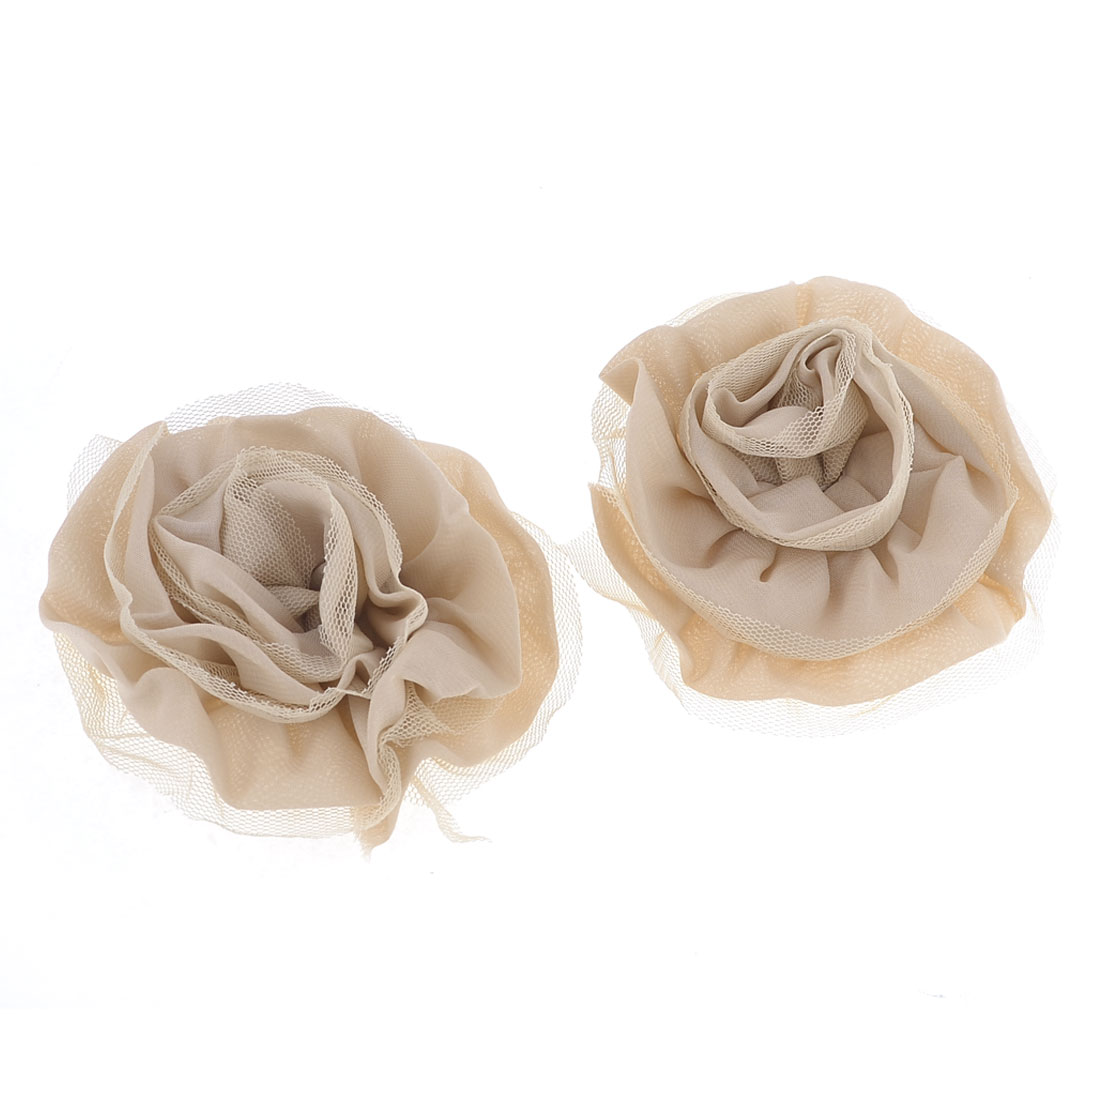 Lady DIY Handbag Shoes Lace Detail Chiffon Decor Flower Khaki 2 PCS